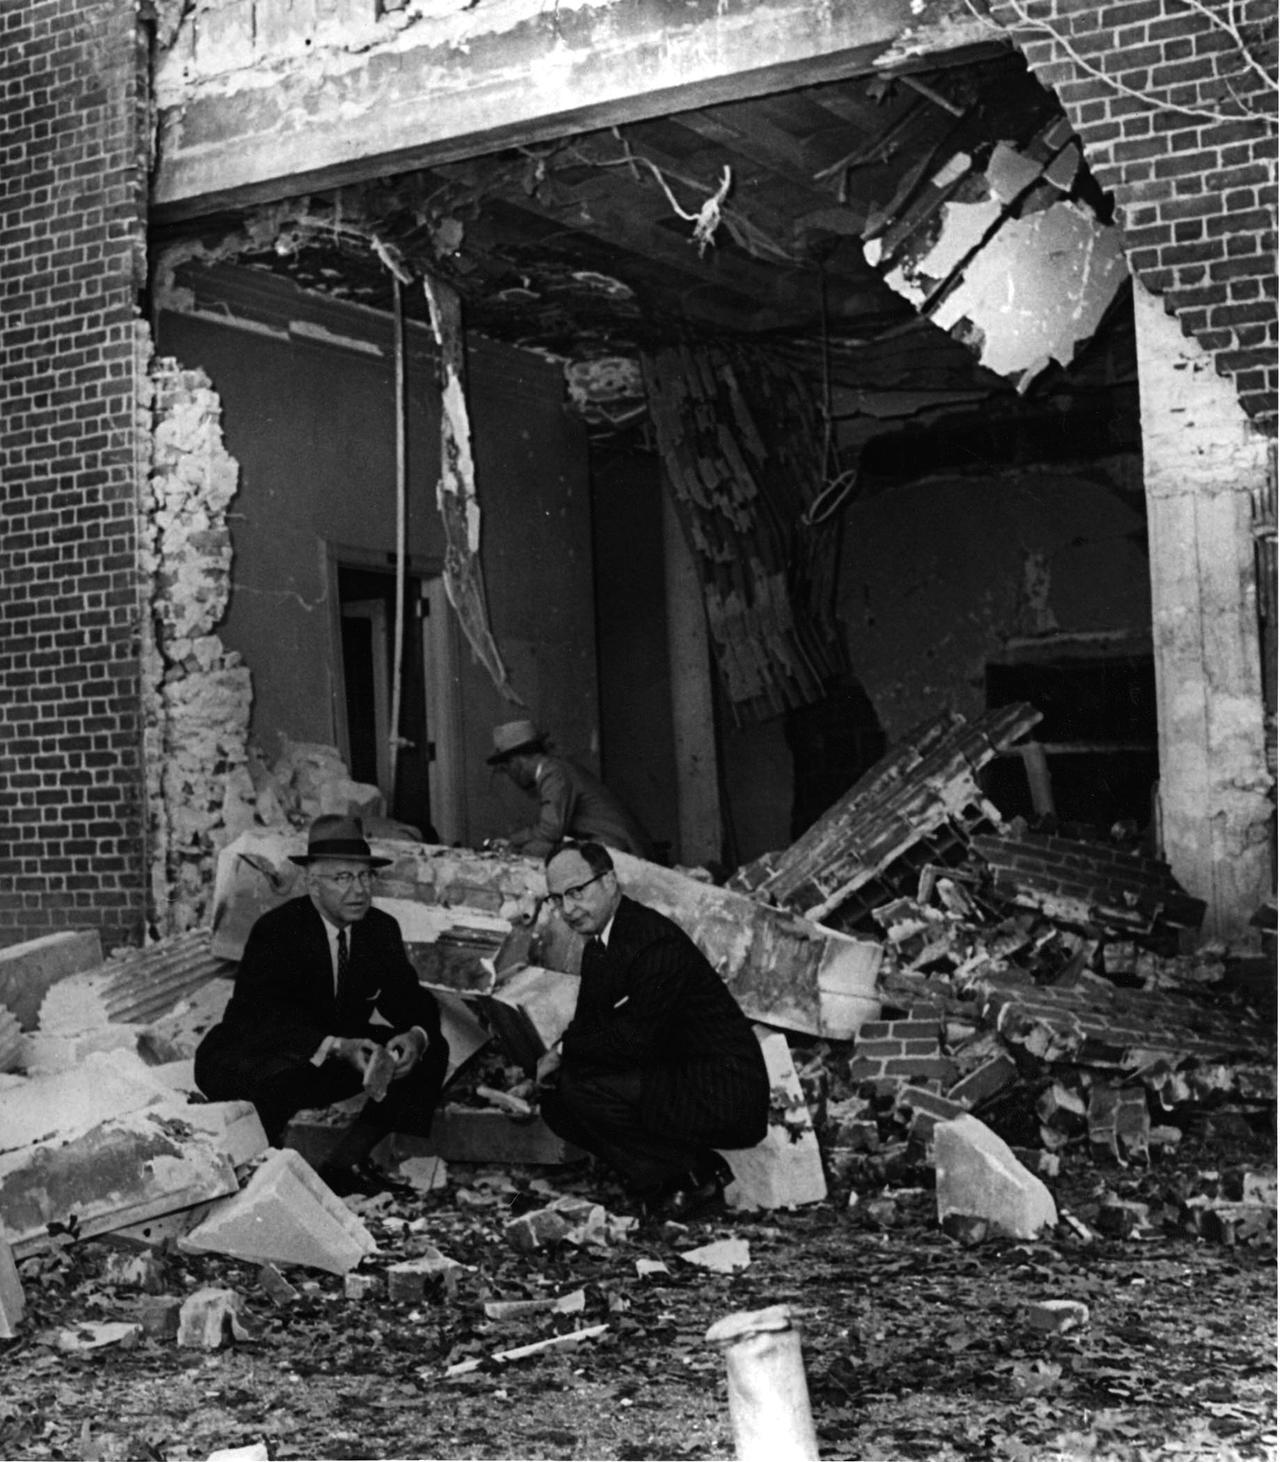 Mayor William Hartsfield with Rabbi Jacob Rothschild After the Bombing of The Temple, Atlanta, Georgia, October 15, 1958